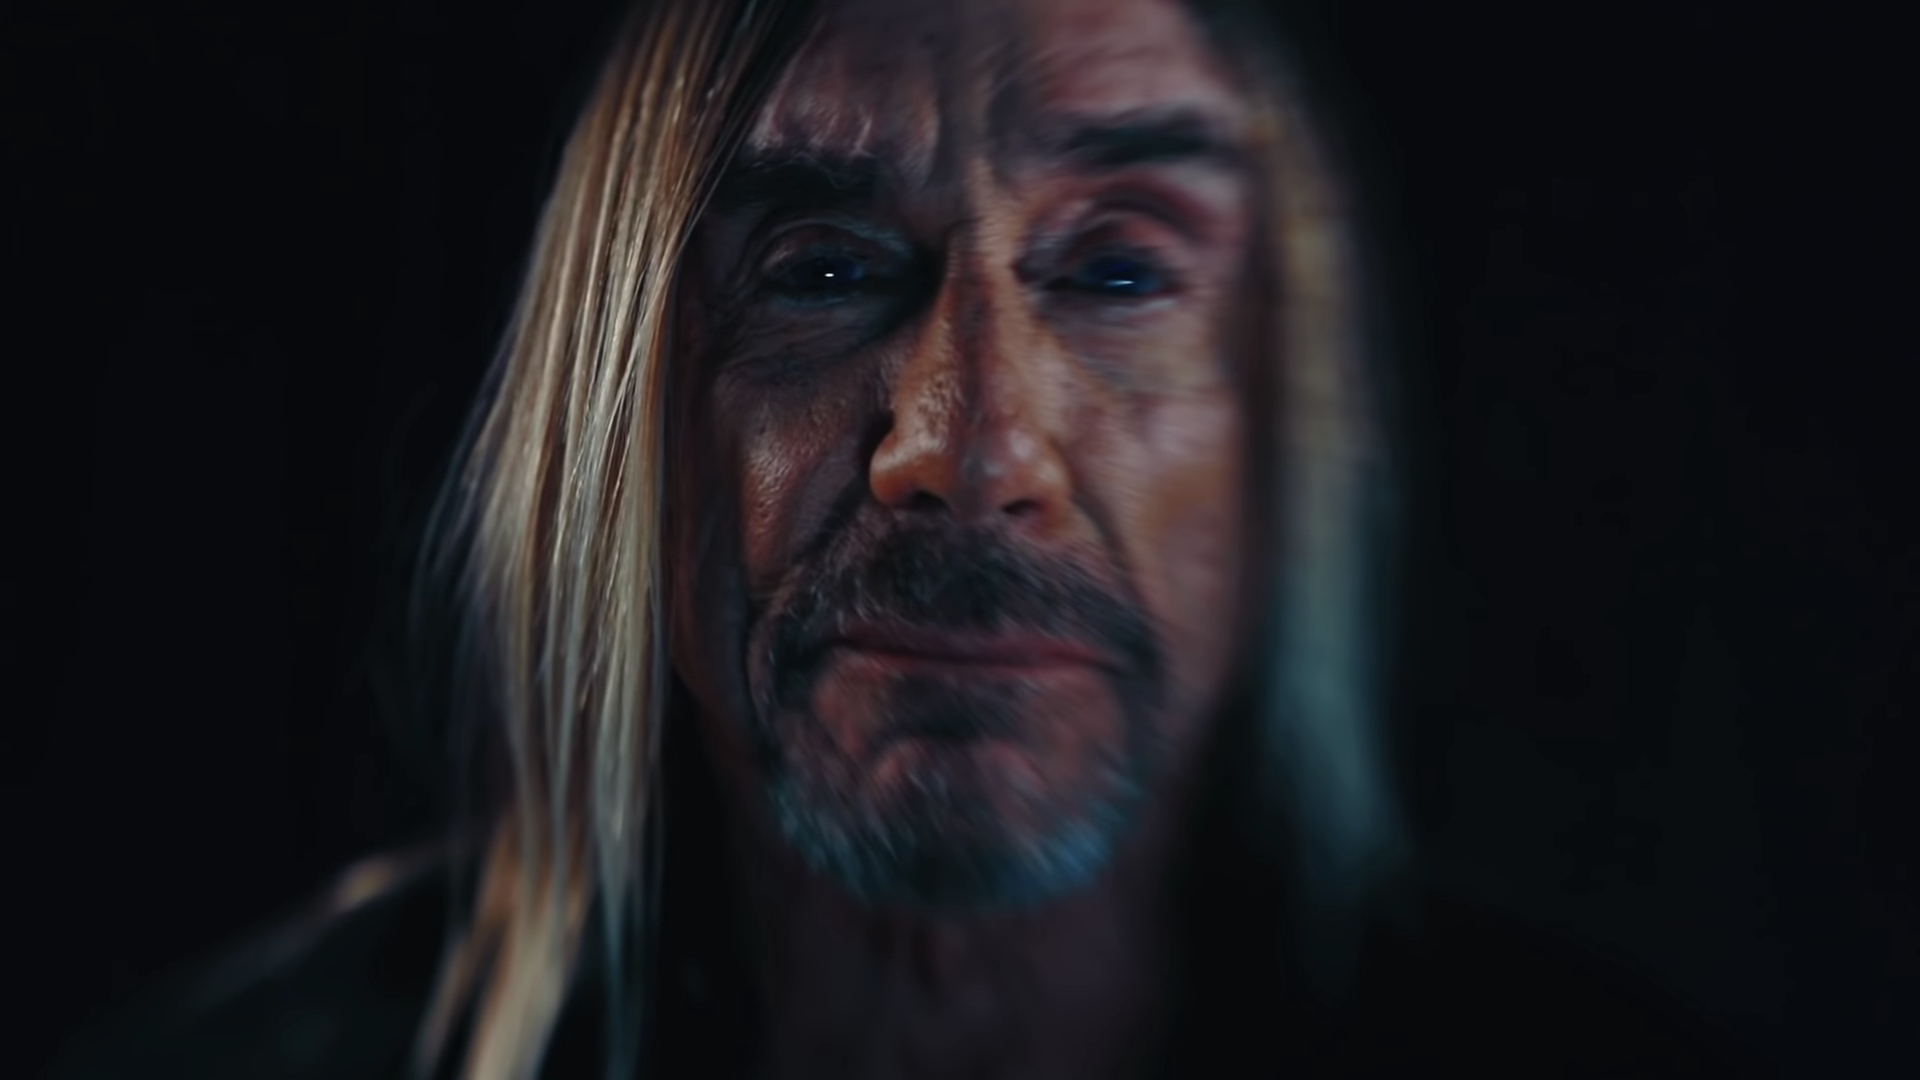 Iggy Pop shares poignant 'We Are The People' video